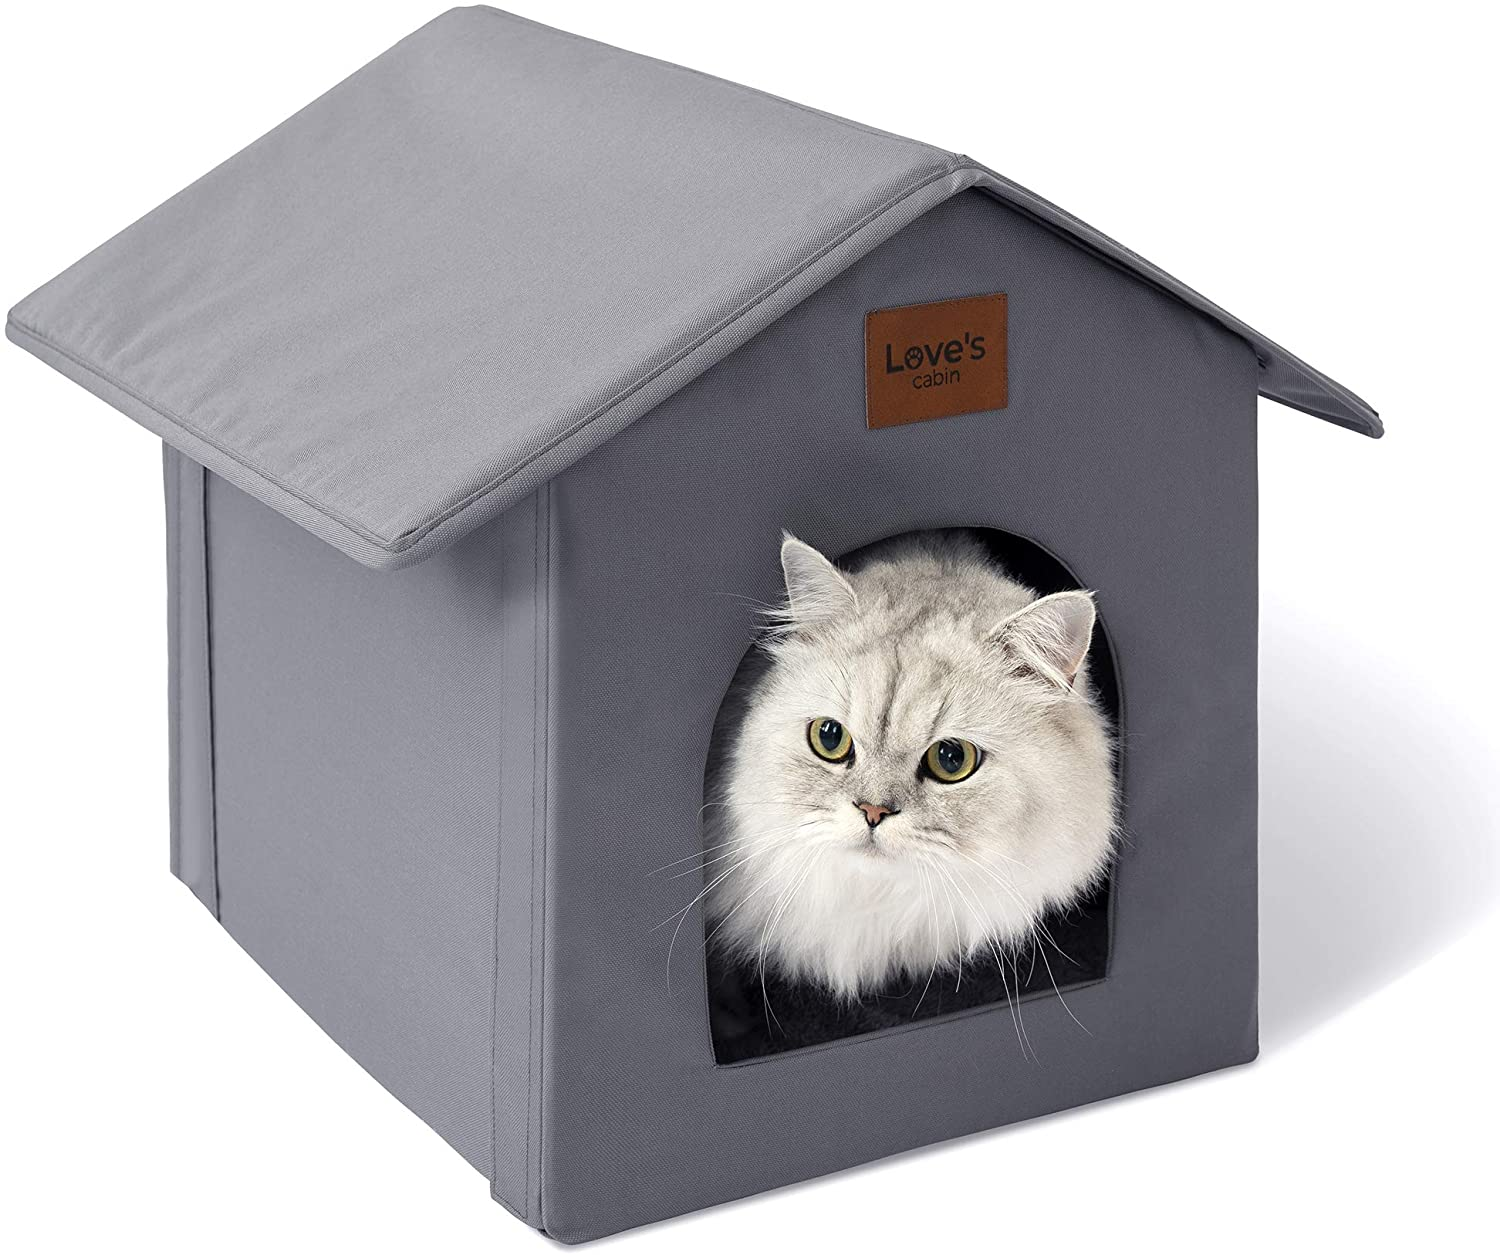 Love's National products cabin Outdoor Cat House for Weatherproof Collapsi 2021 Winter